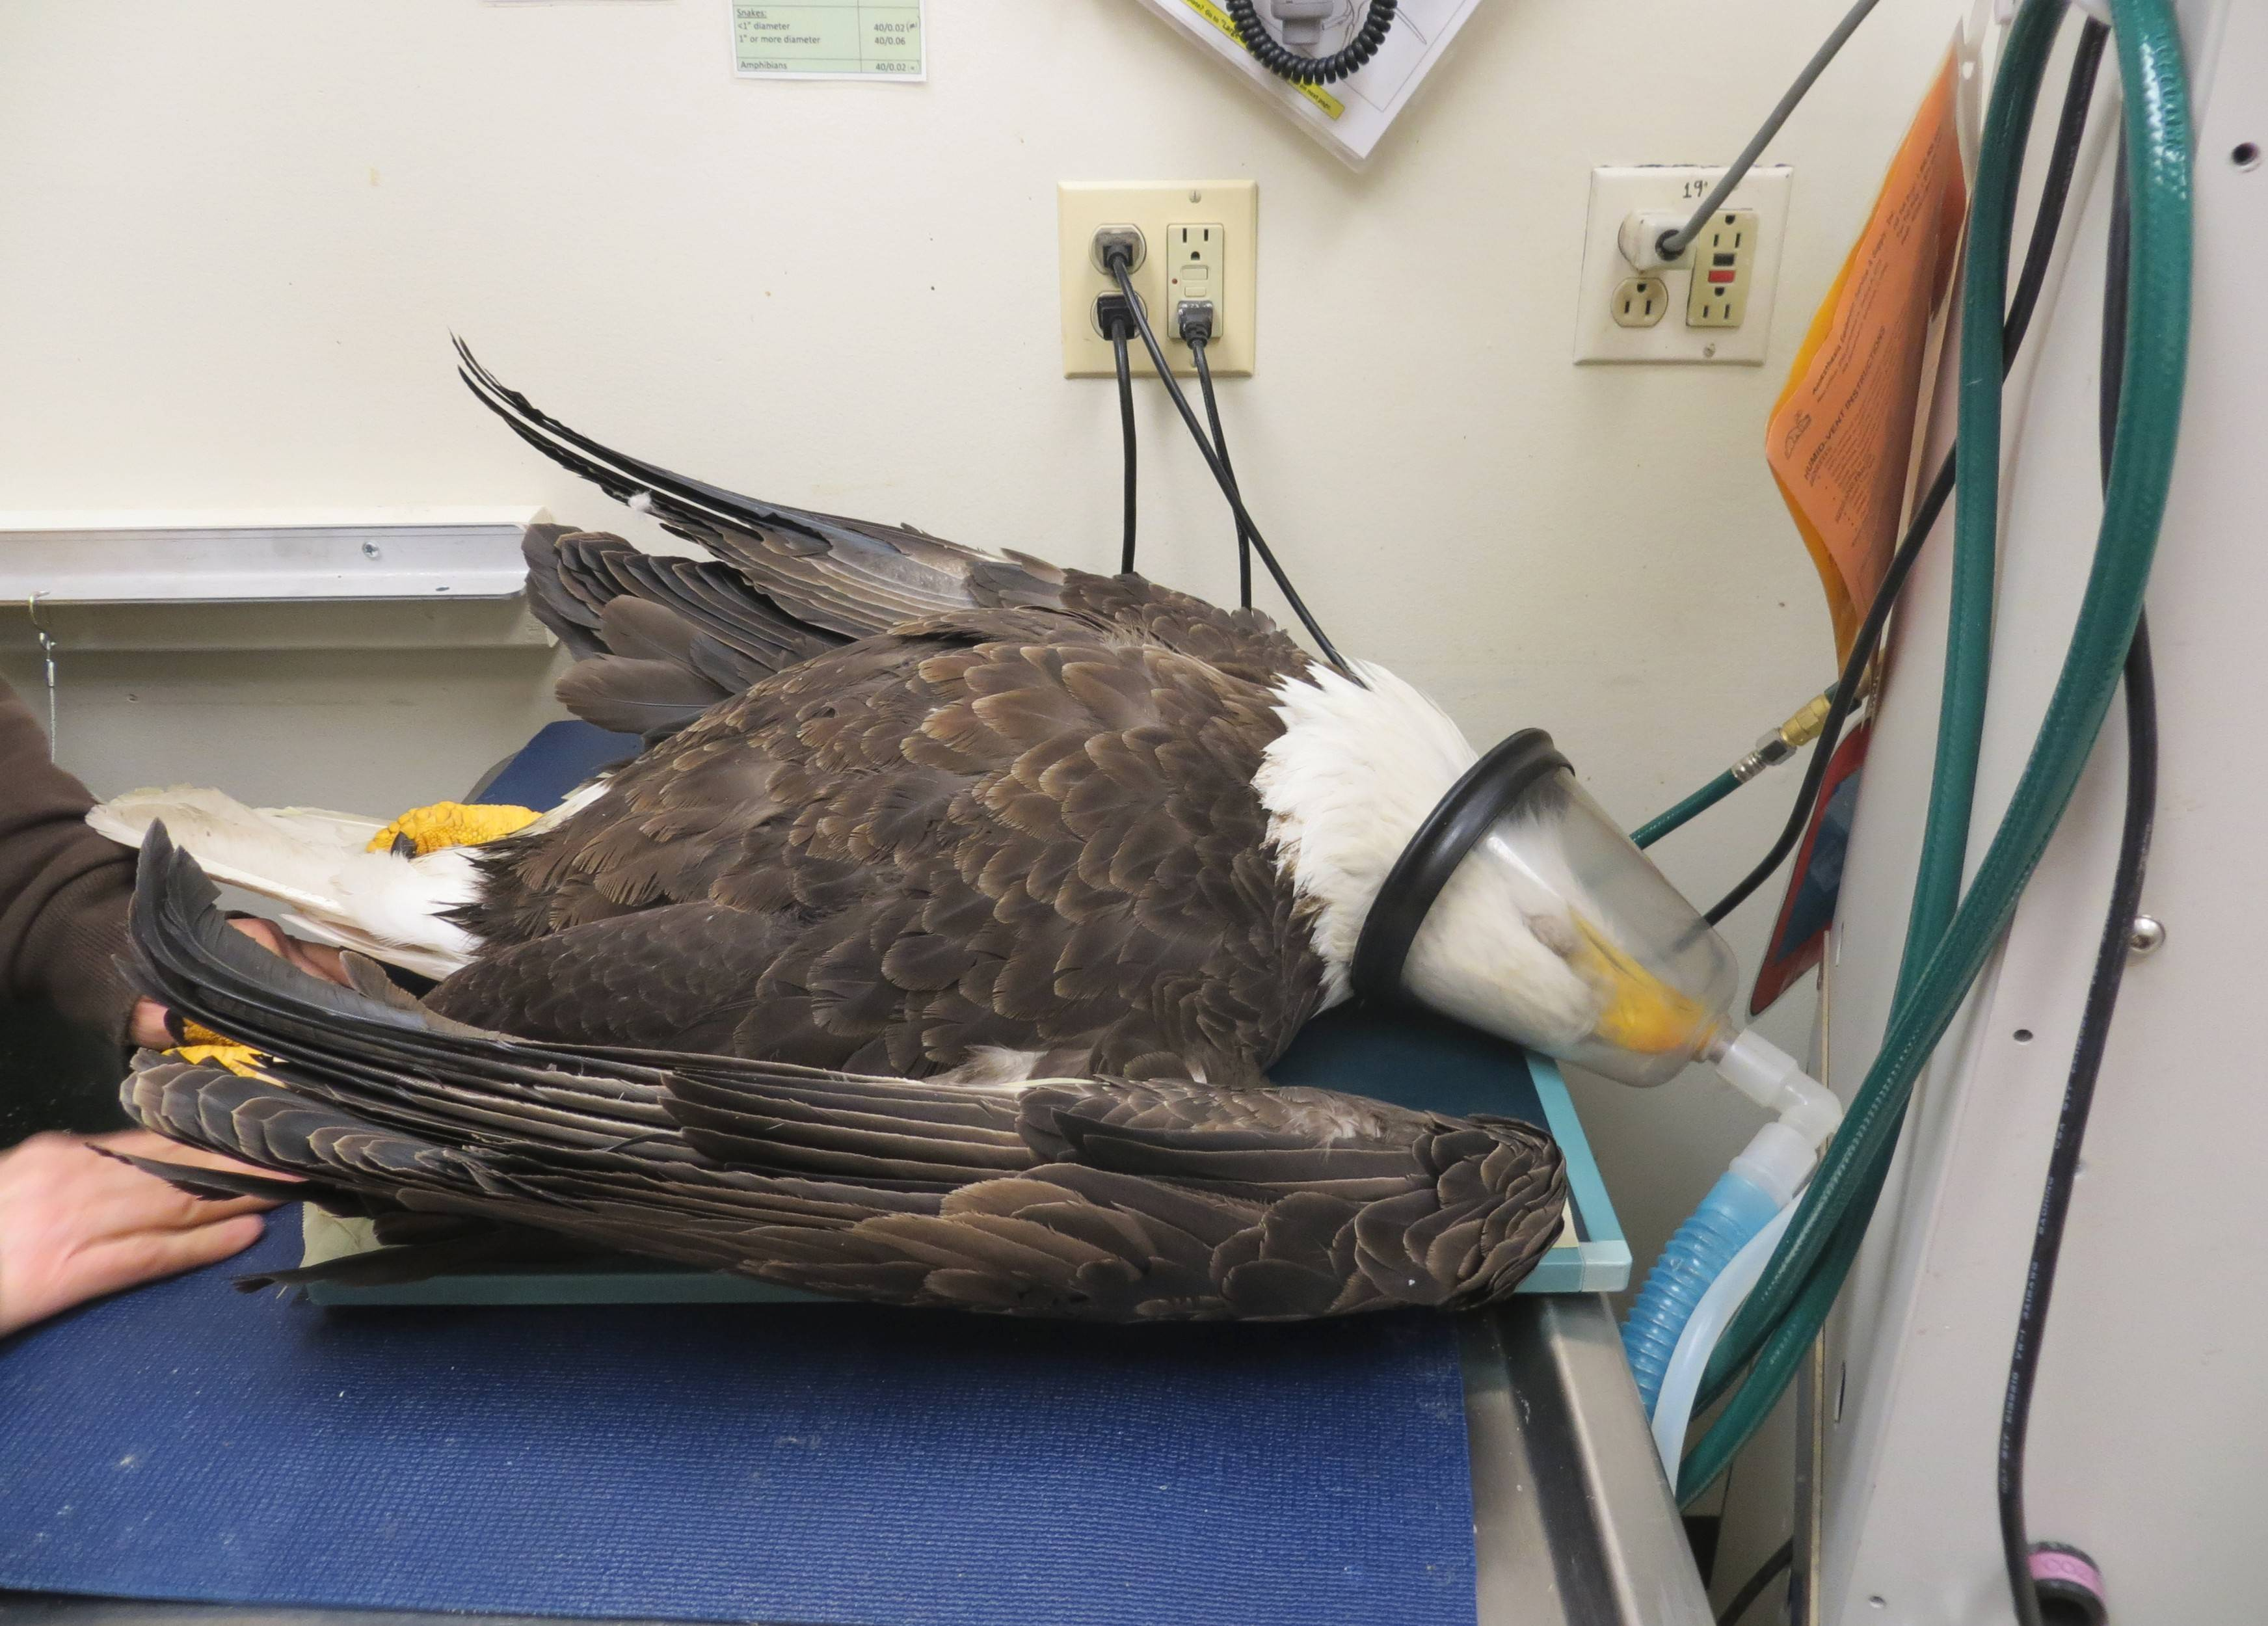 A male bald eagle found injured in Oak Lawn is prepared for surgery by Willowbrook Wildlife Center veterinarian Dr. Jen Nevis. The eagle was found in February with a BB gun wound but had recovered enough to be released Friday at Pratt's Wayne Woods Forest Preserve near Wayne.